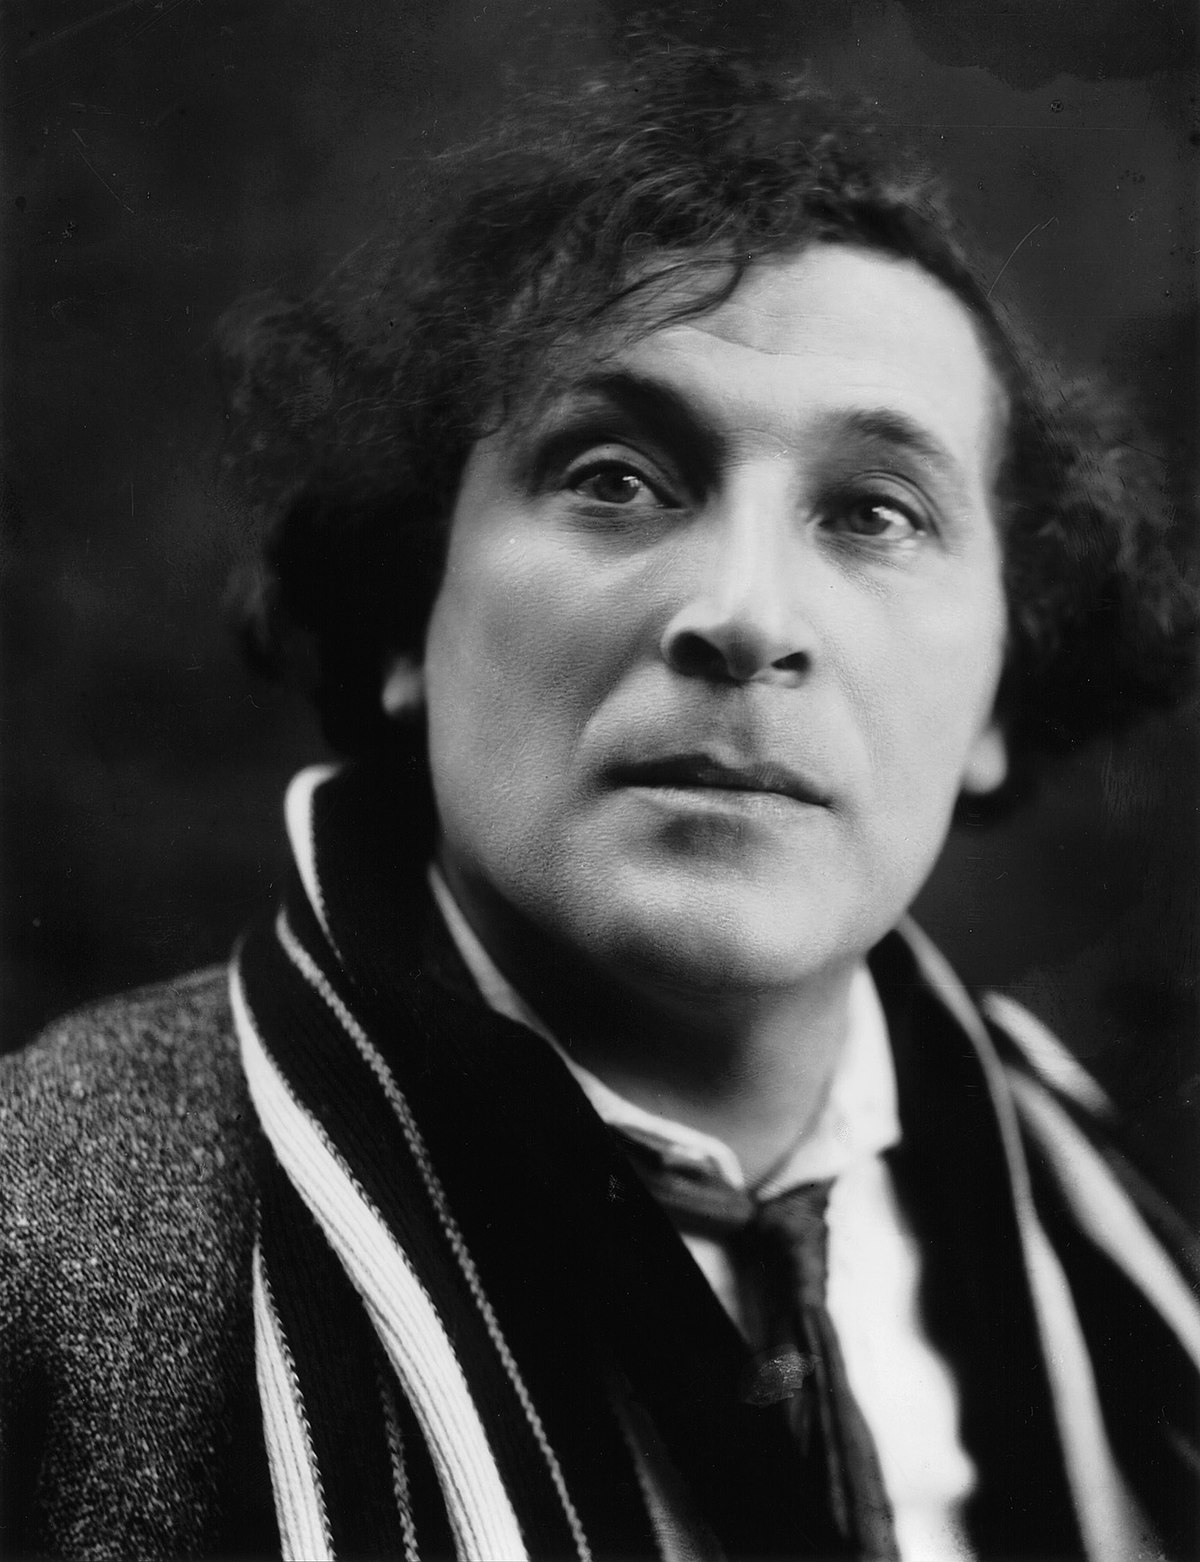 marc chagall happy birthday : marc chagall visions de paris 1960 :  the marc chagall museum en 2020/2021